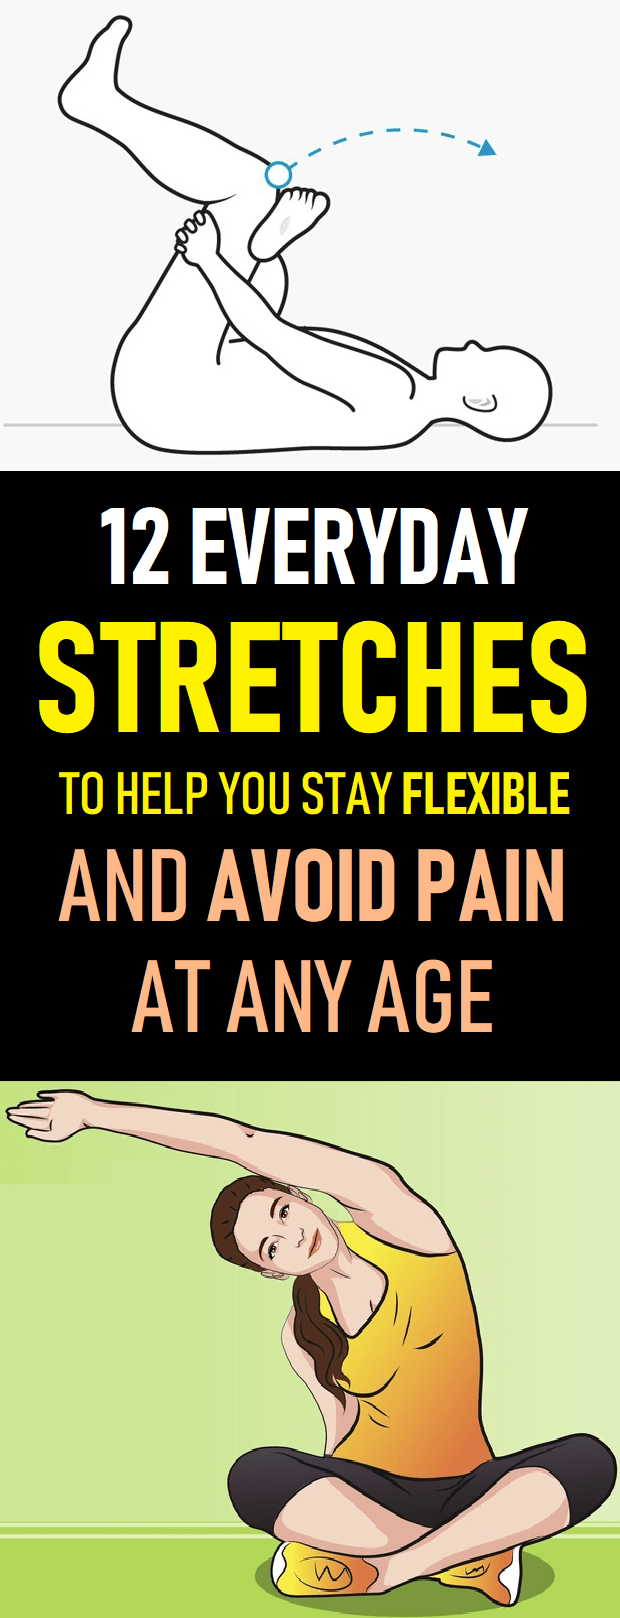 everyday stretches for back pain #health&fitness